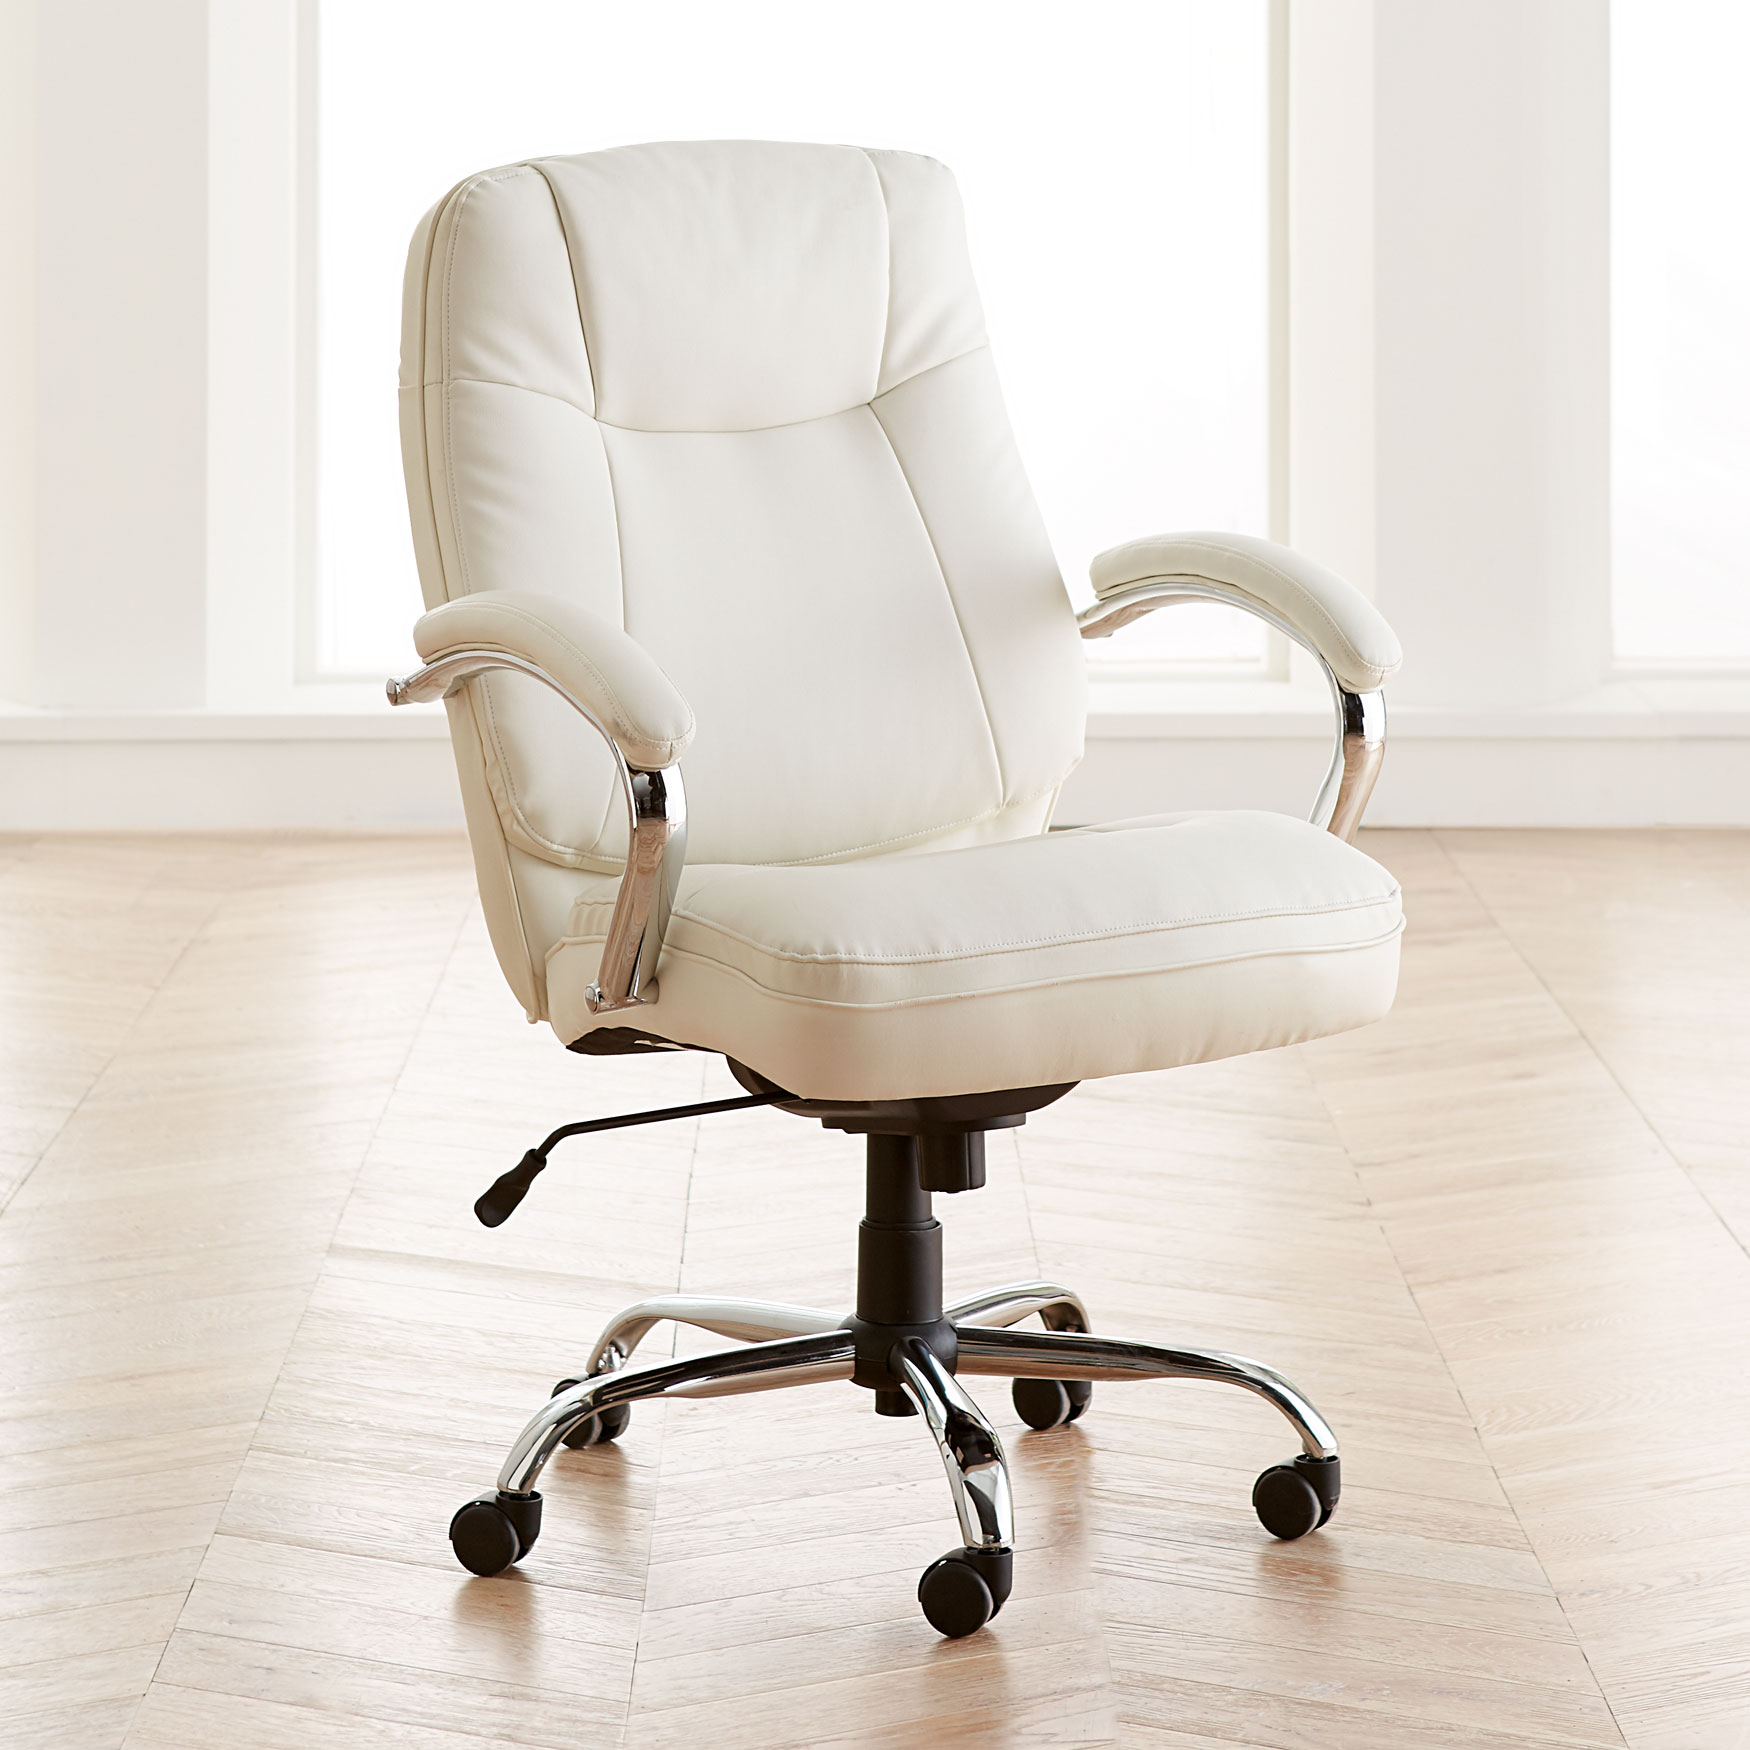 Oversized Women's Office Chair,